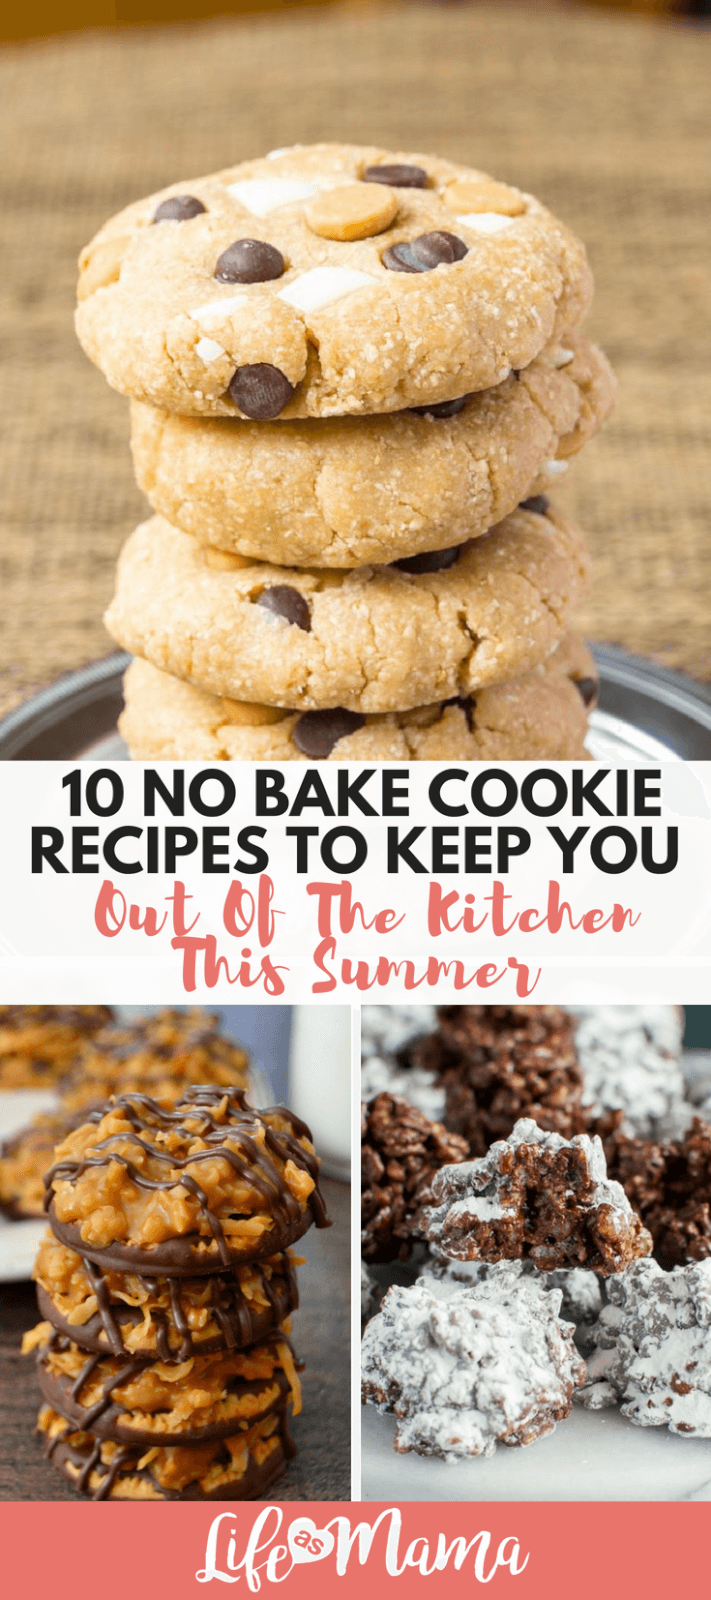 10 No Bake Cookie Recipes To Keep You Out Of The Kitchen This Summer